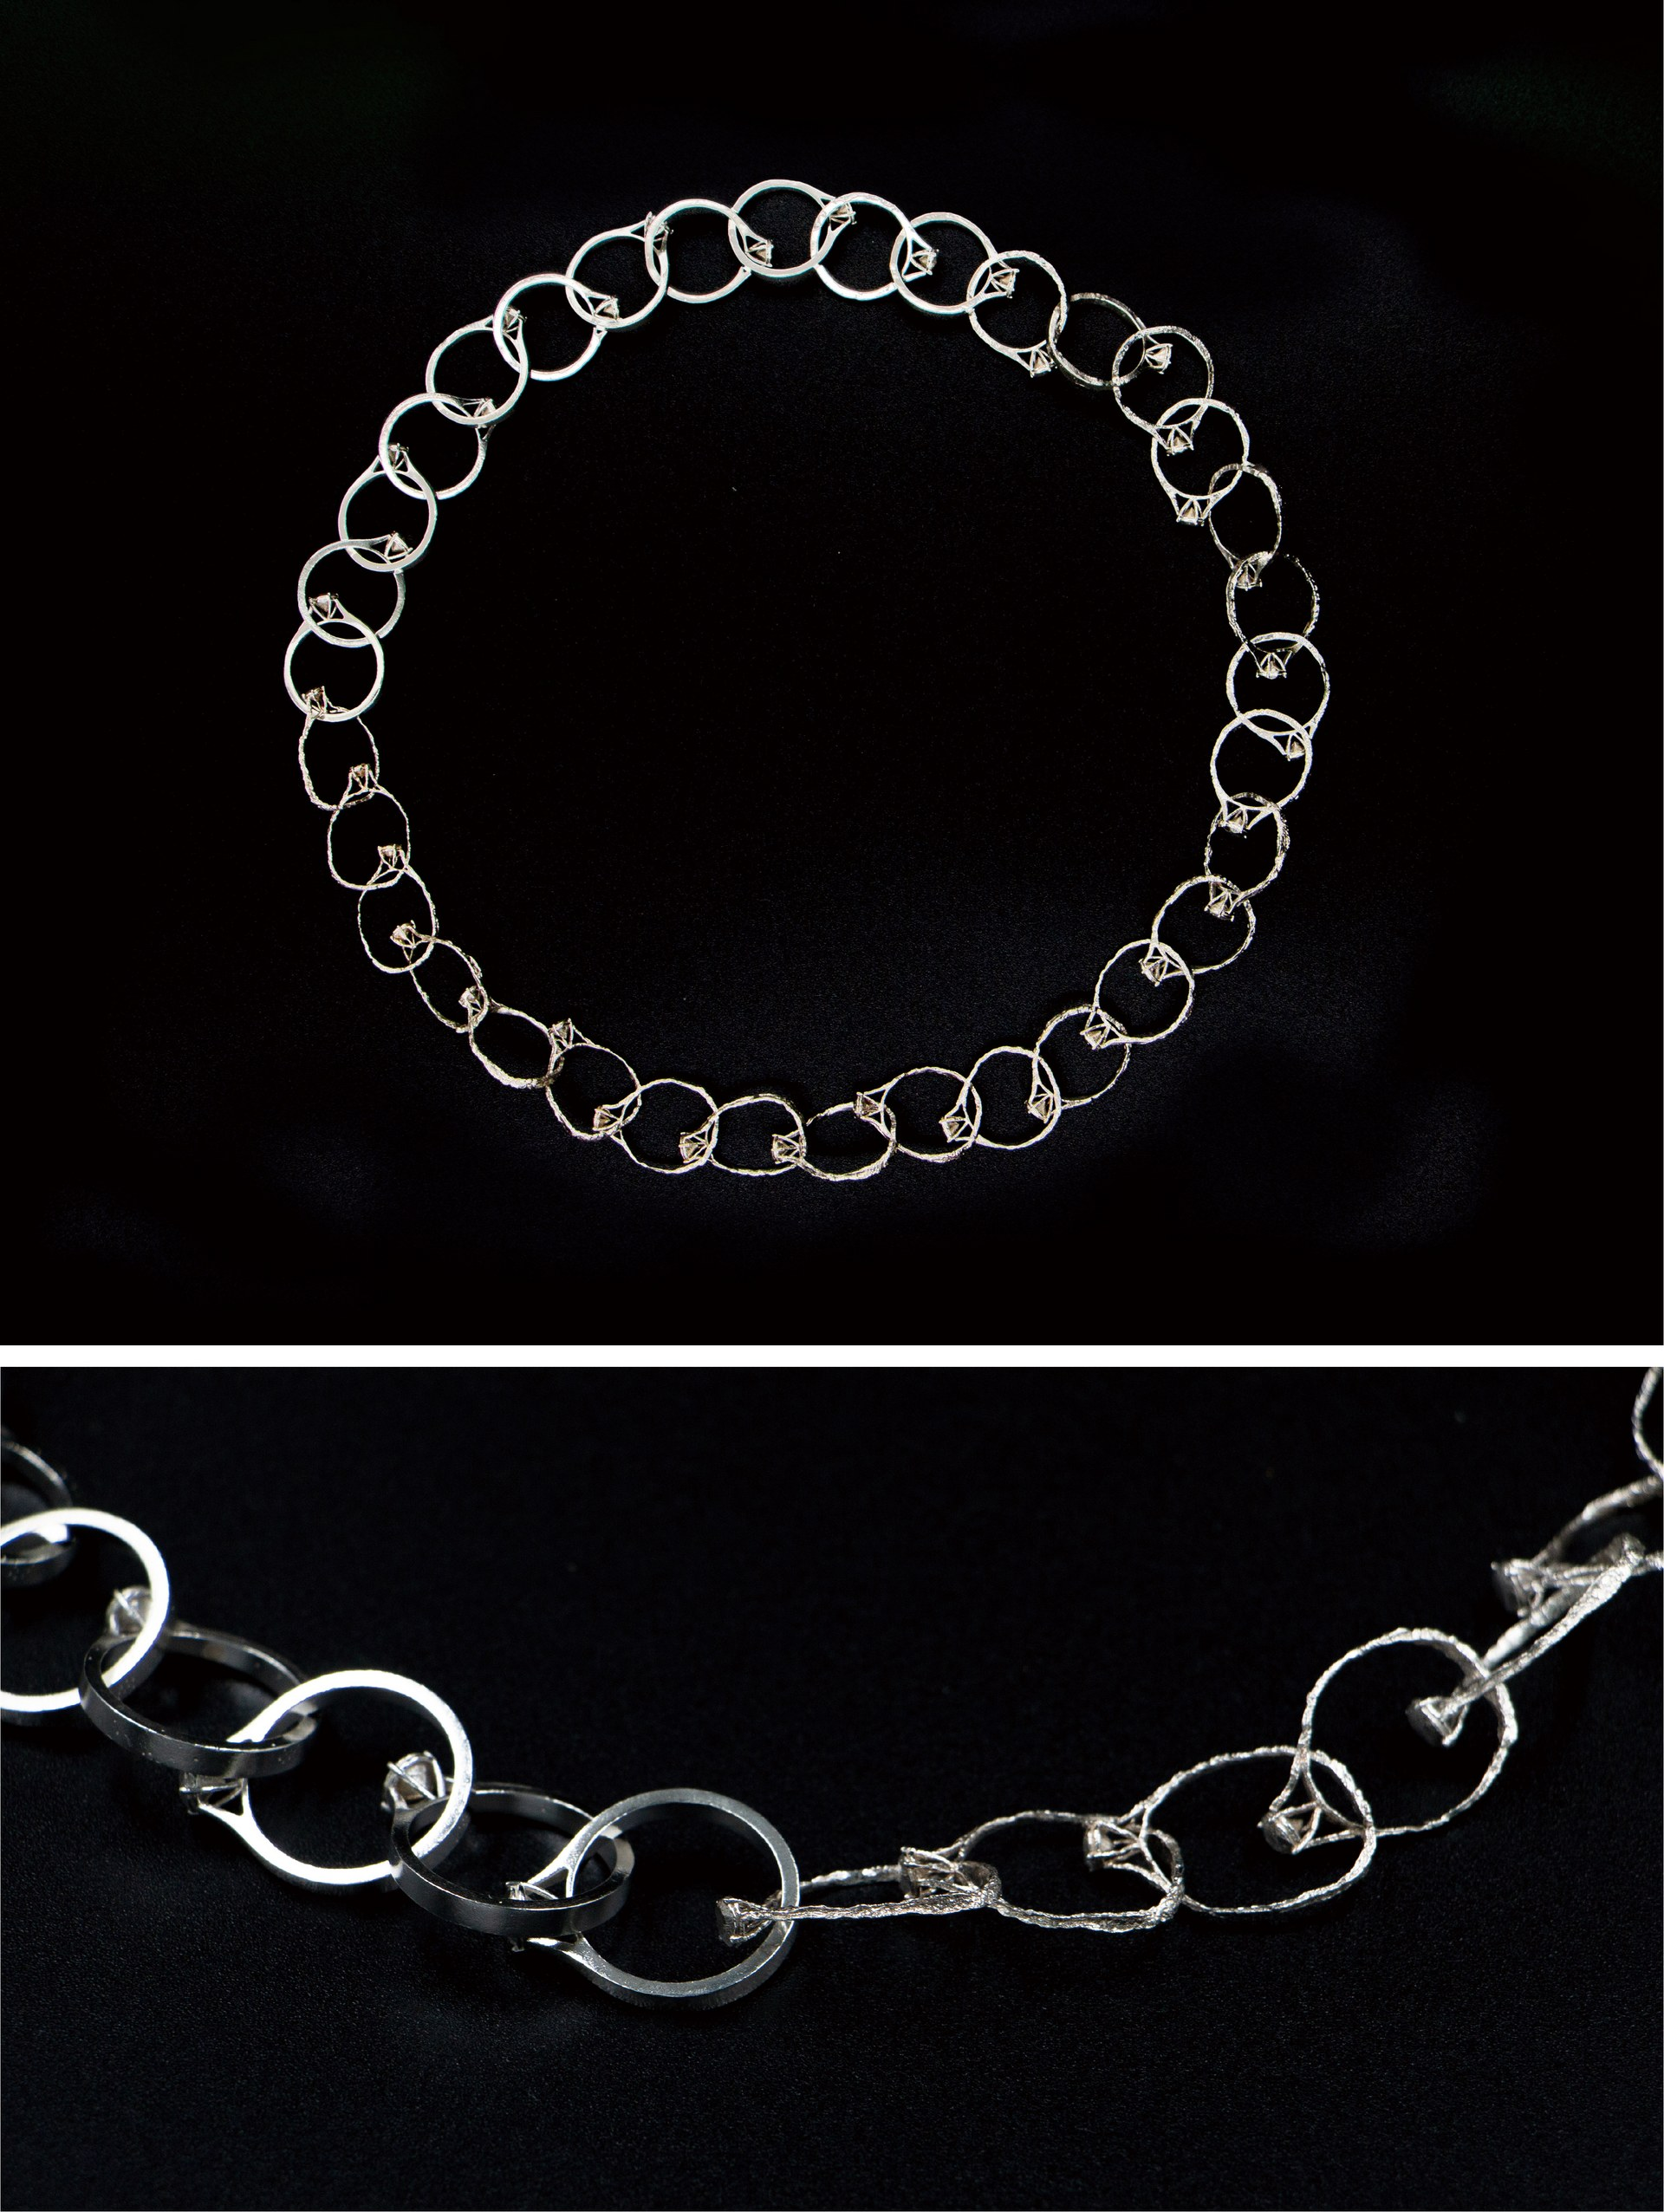 DECAY RINGS NECKLACE (DETAIL)